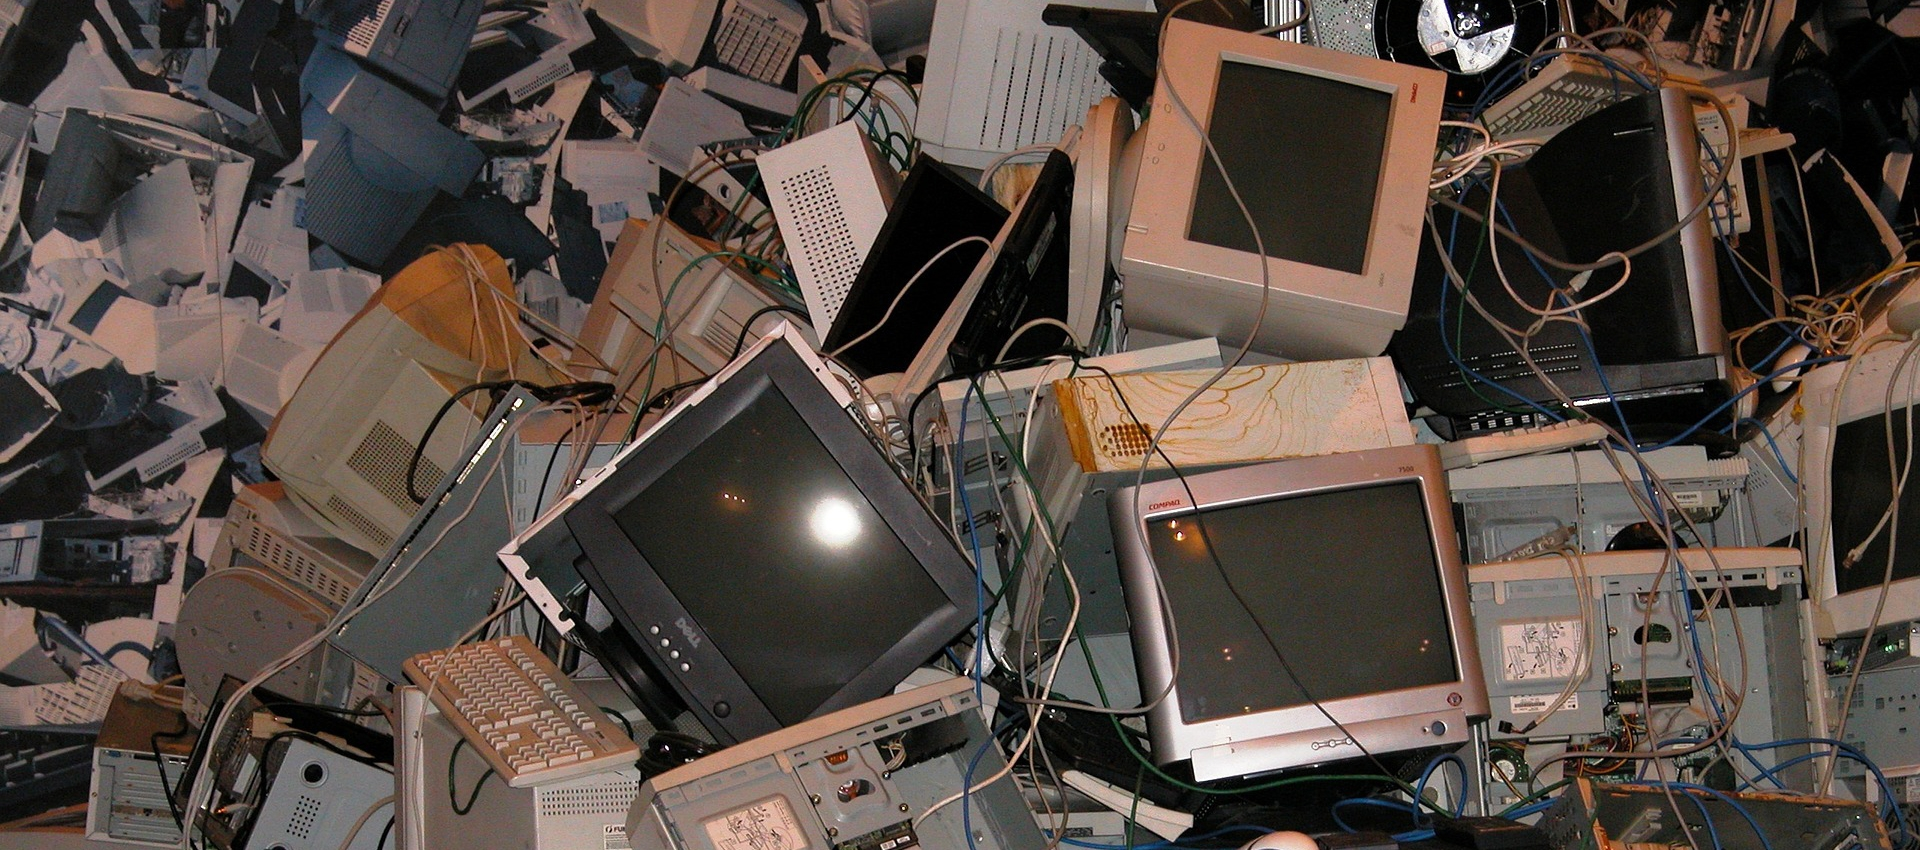 Potential Hazards of Electronic Waste (e waste)